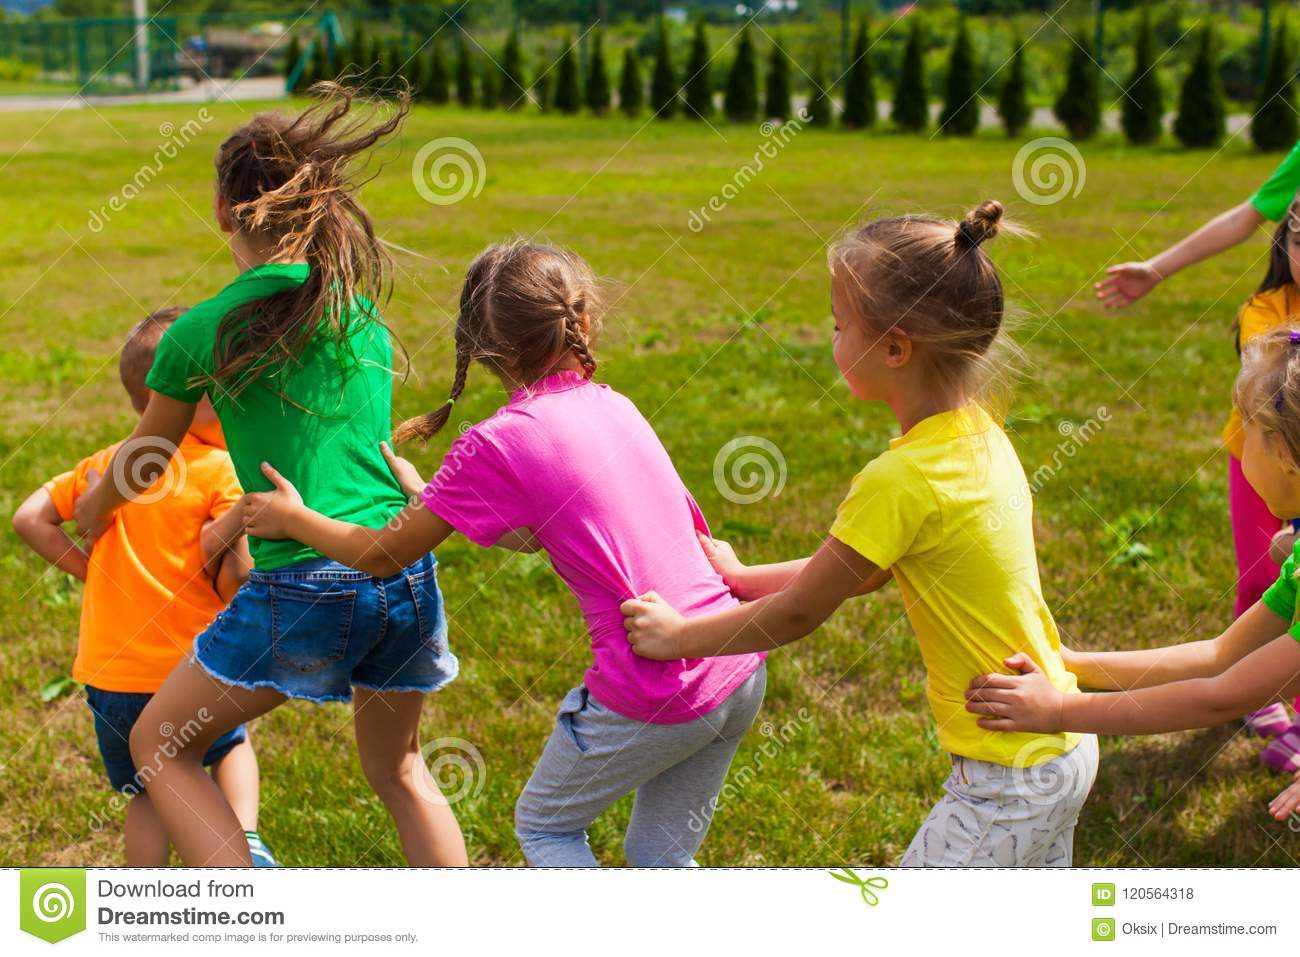 Positive Children Camp Games Stock Photo - Image of active